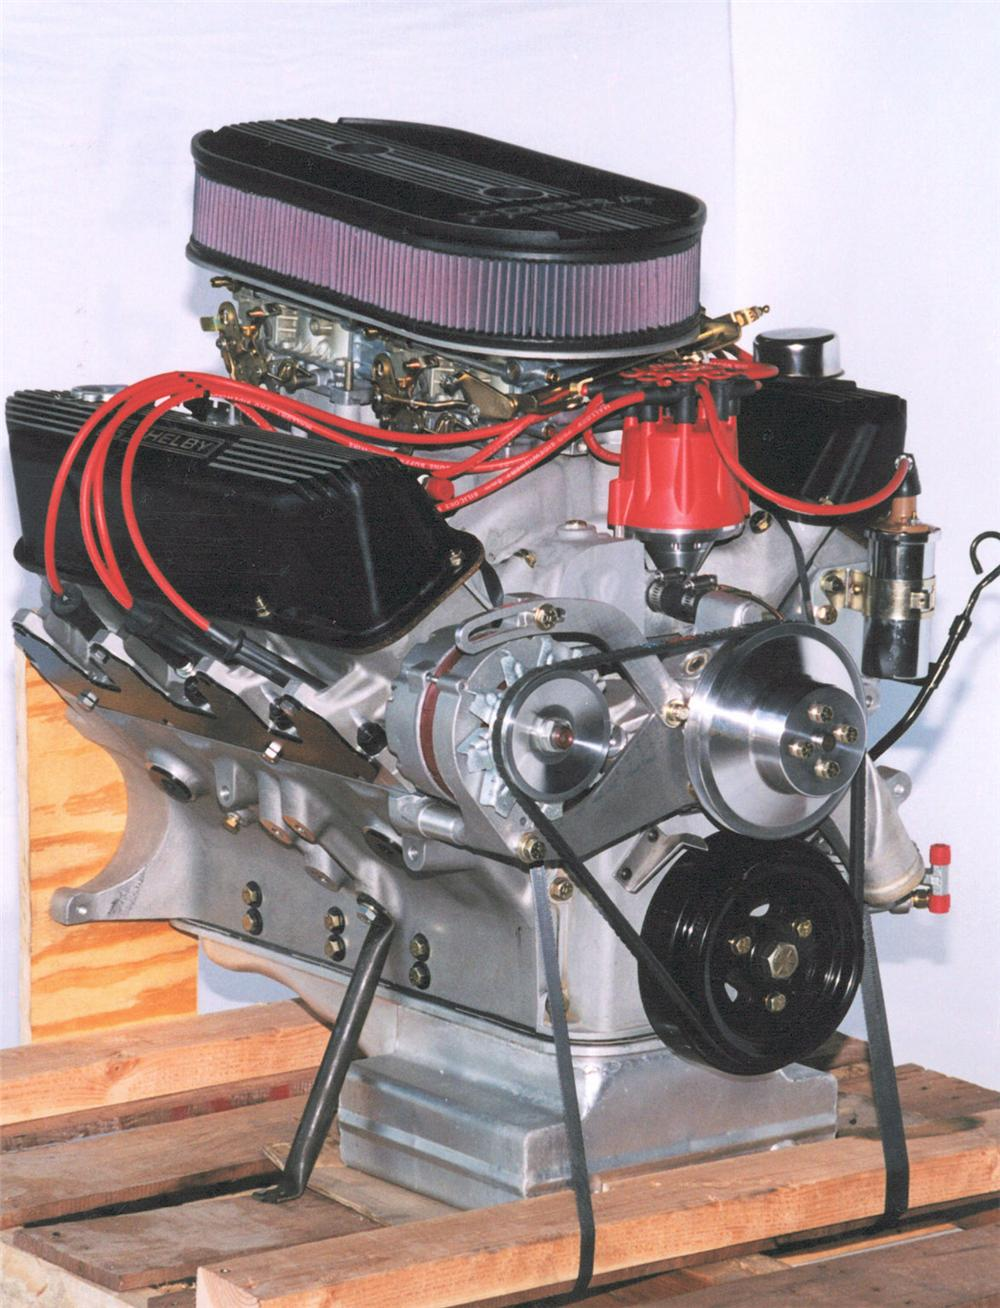 1967 SHELBY GT500 FASTBACK - Engine - 22231